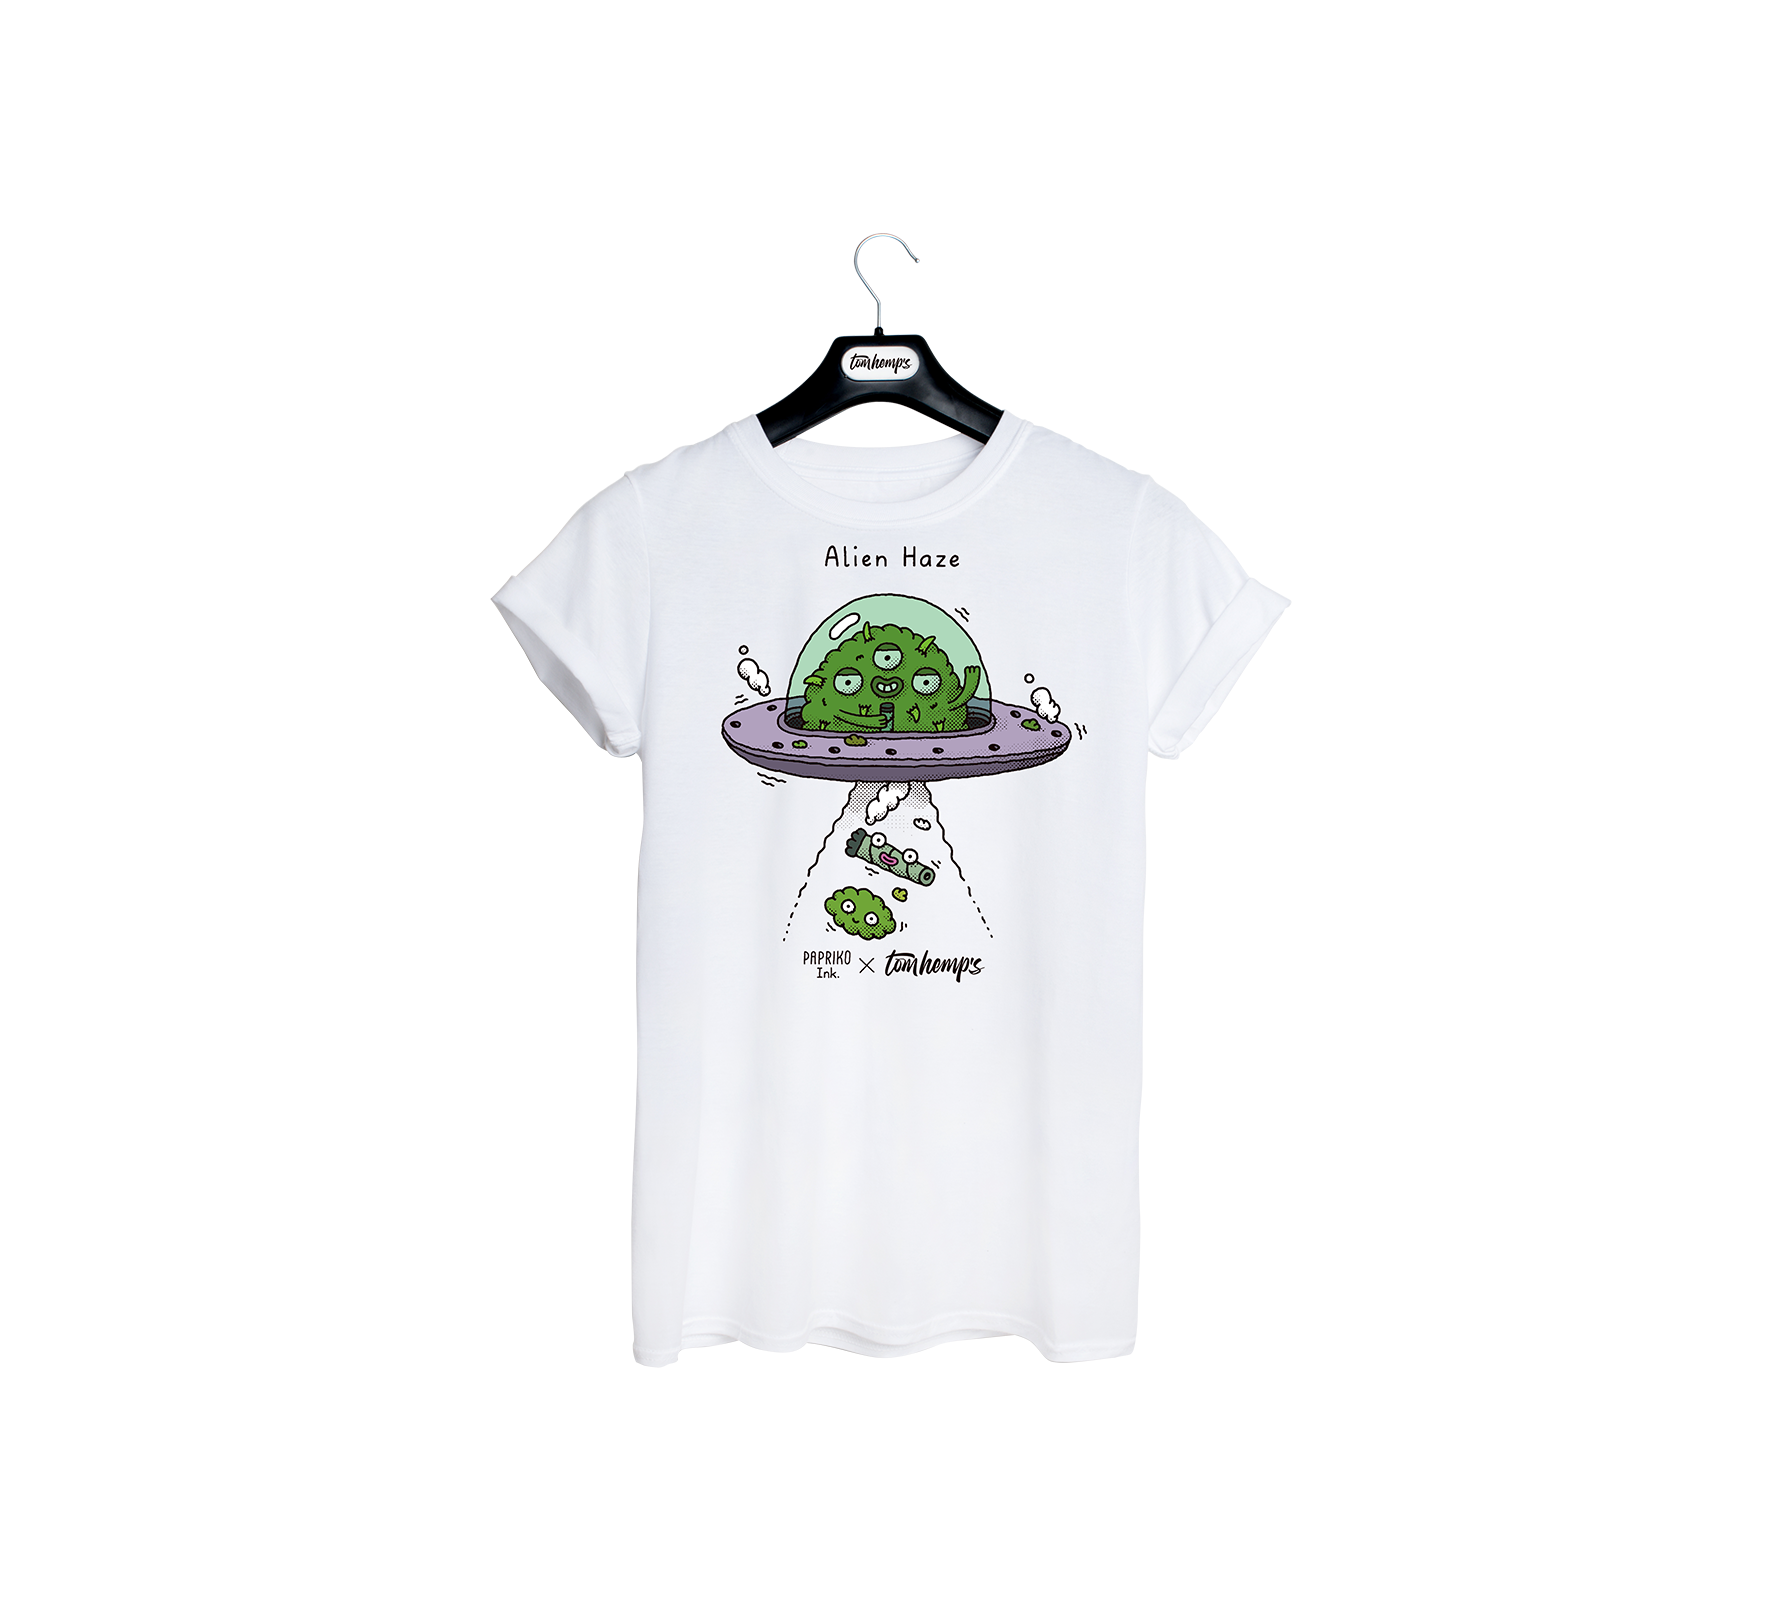 T-Shirt Papriko ink Alien Haze